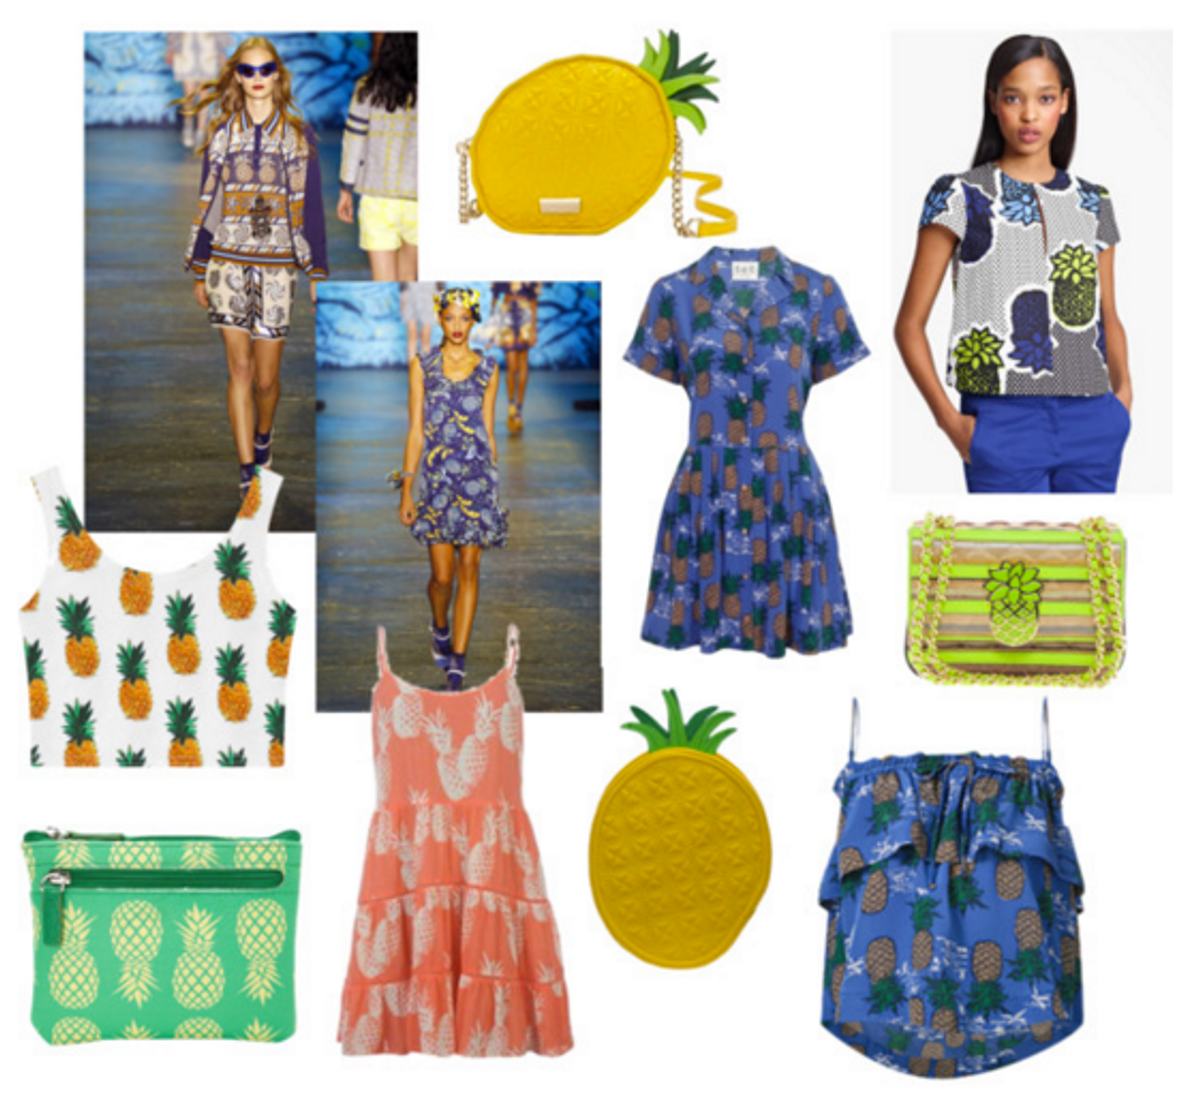 Spring 2016 Trend: the Pineapple Motif